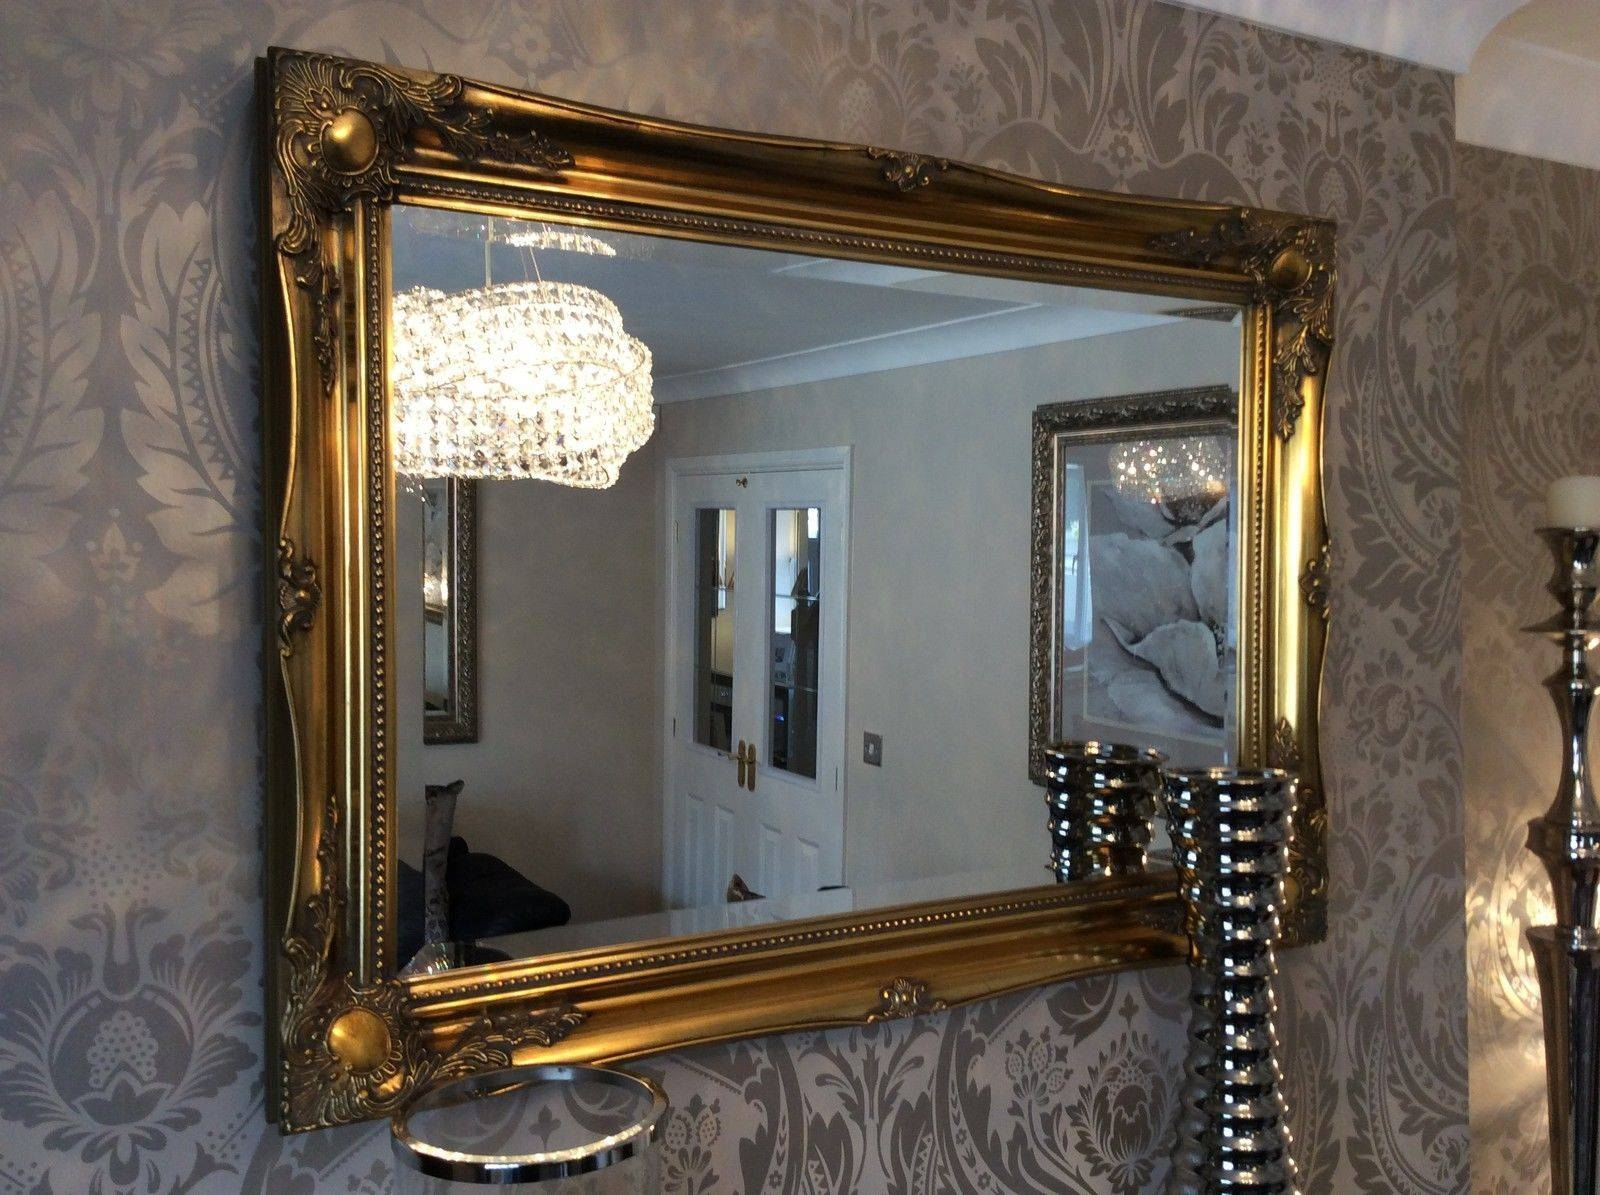 Antique Wall Mirrors Antique Wall Mirrors Large Antique Wall regarding Large Antique Wall Mirrors (Image 7 of 25)